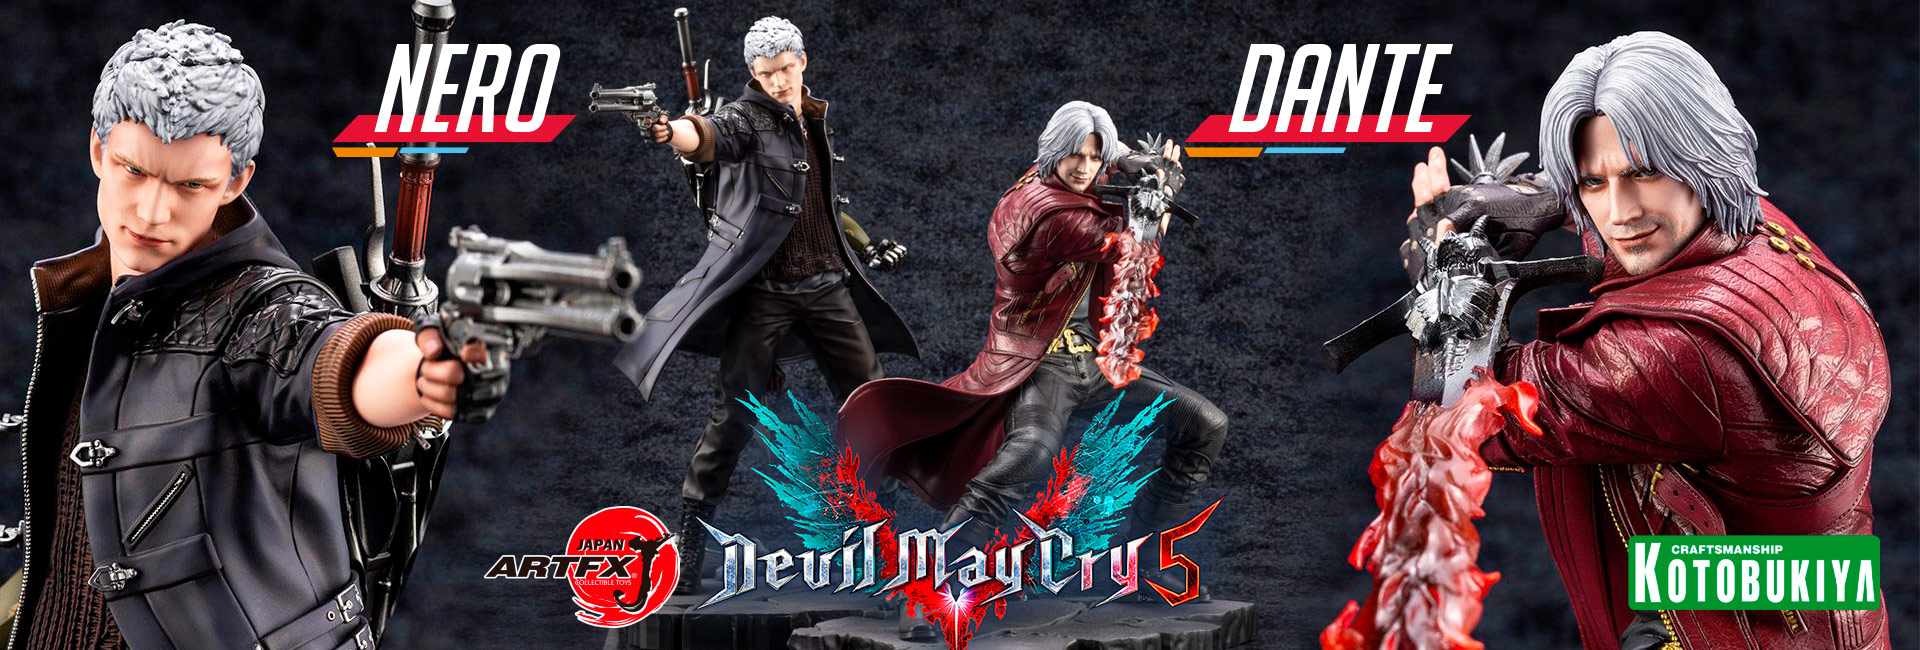 ARTFX J Devil Mat Cry 5